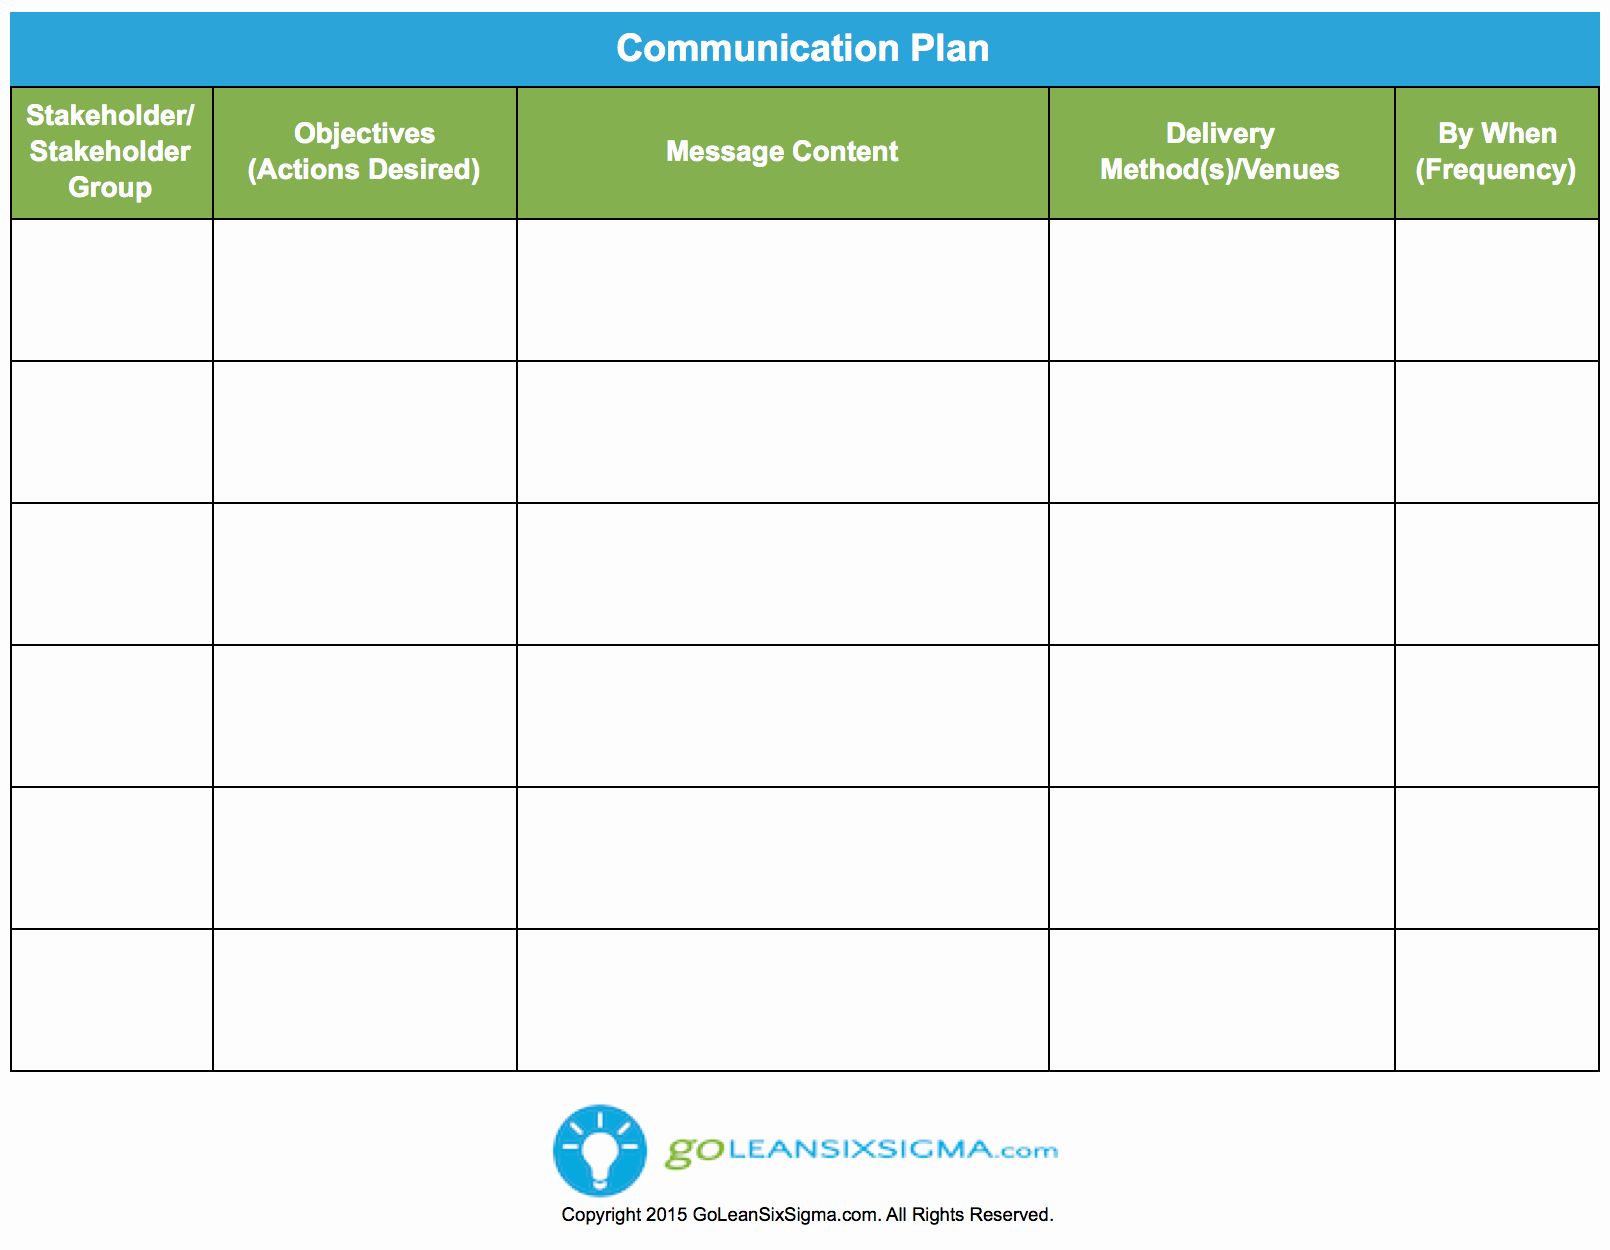 Strategic Communications Plan Template Unique Lean Templates Archives Page 2 Of 4 Goleansixsigma